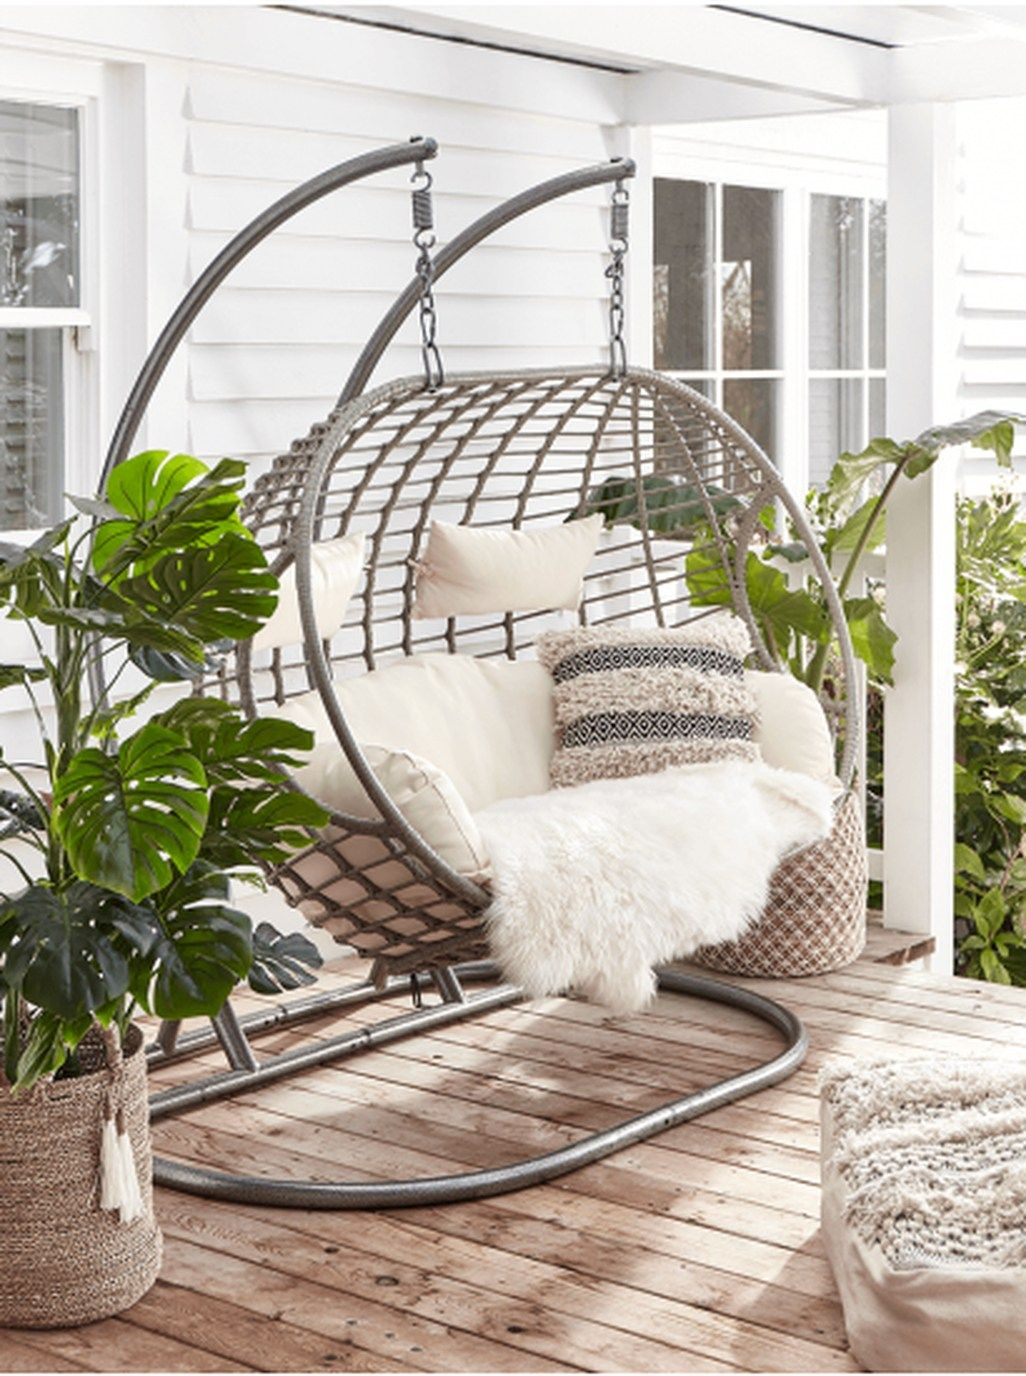 Afordable Summer Balcony Decoration 43 Hanging Chair Outdoor Balcony Decor Garden Swing Seat